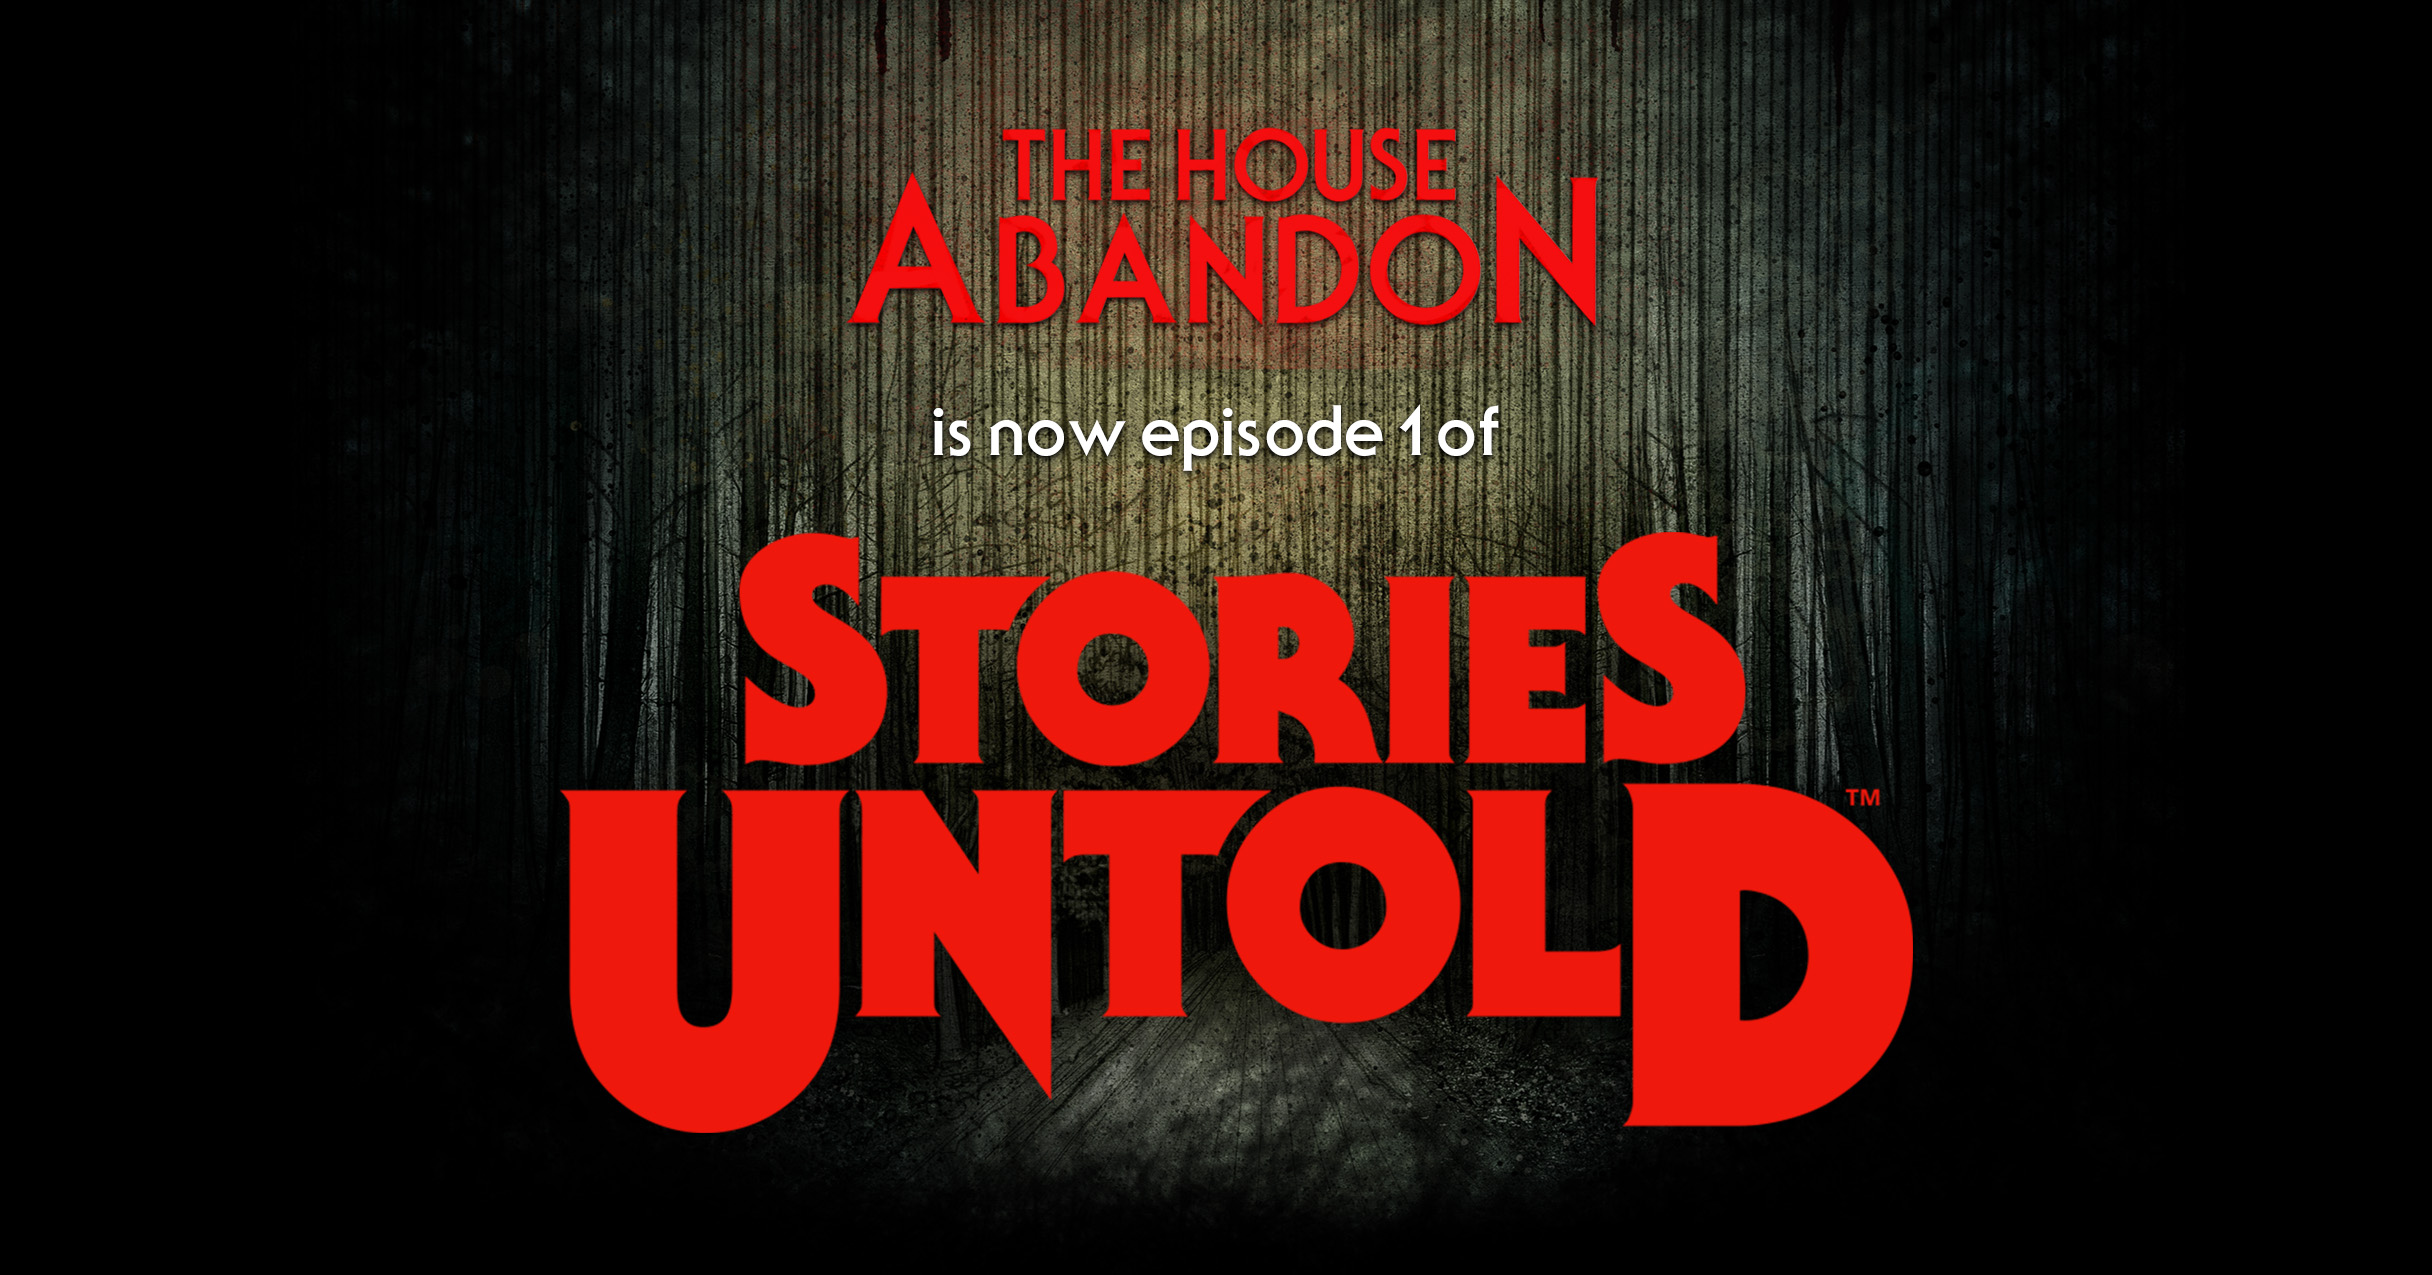 The House Abandon - Now part of 'Stories Untold'!